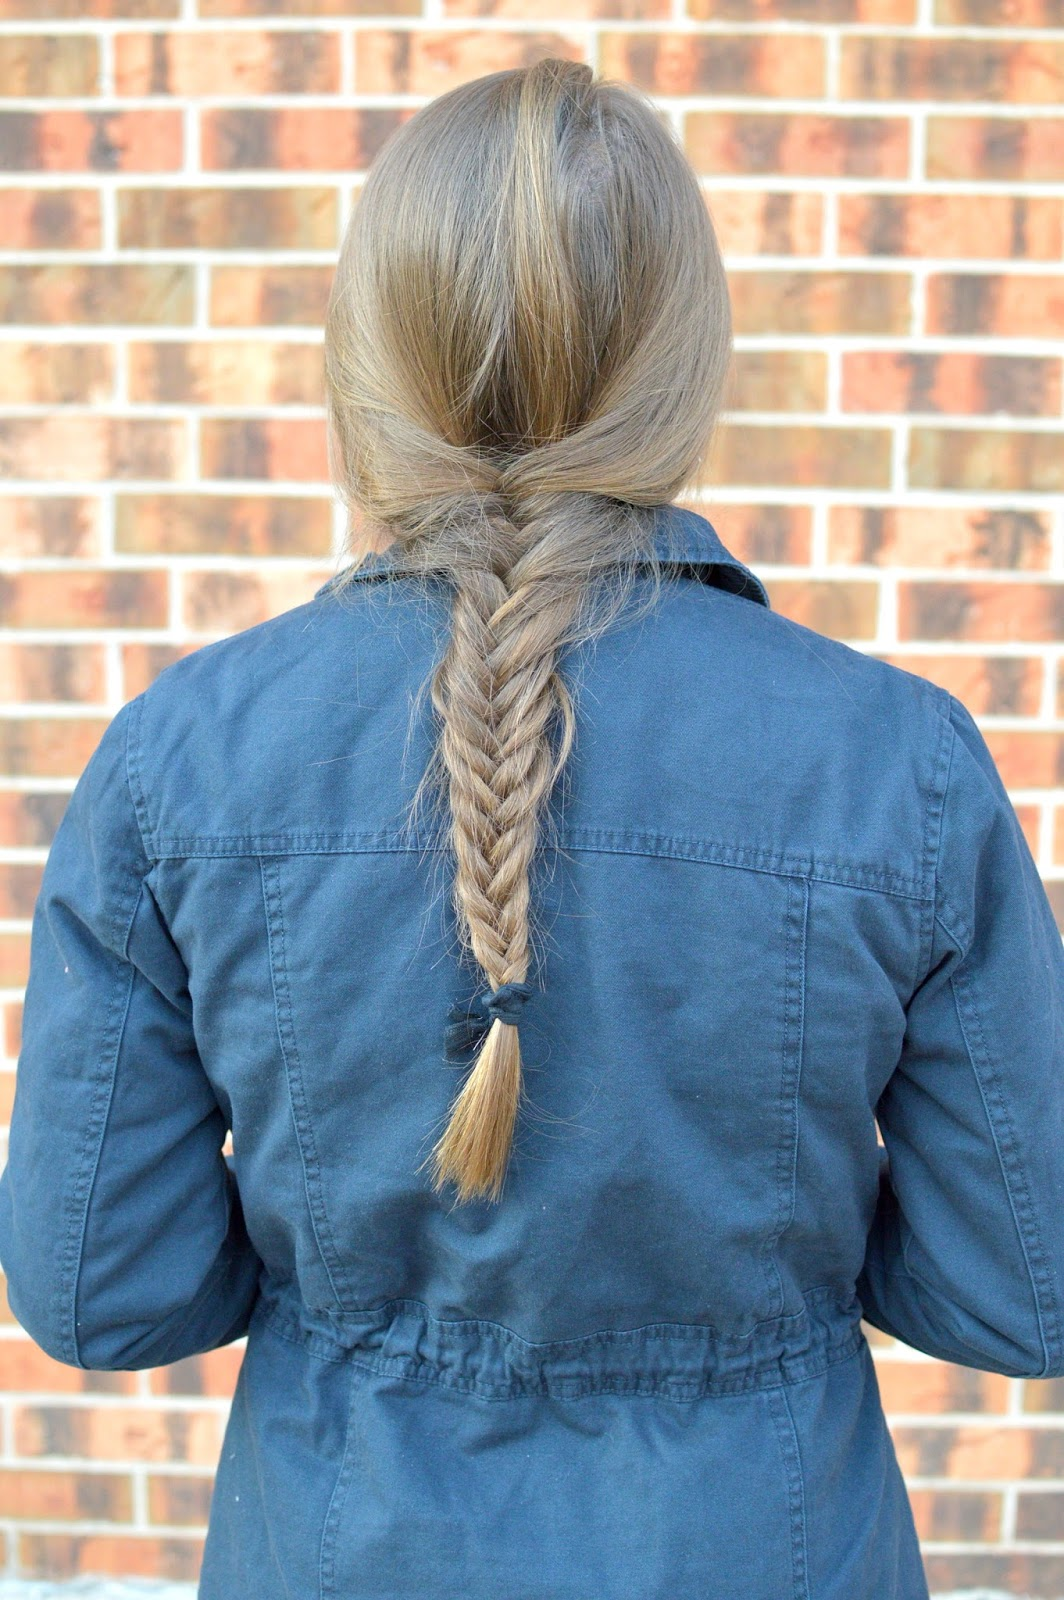 fishtail braid hair ideas